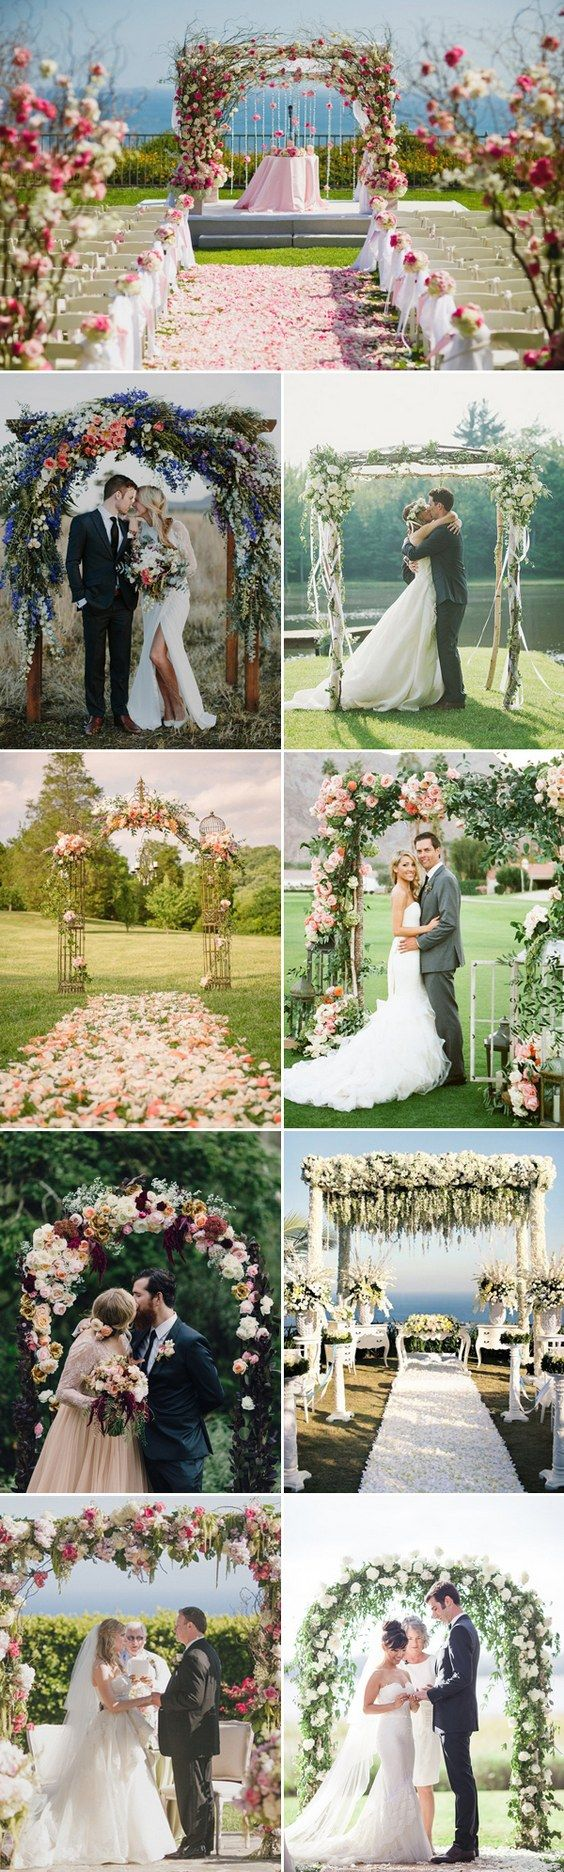 Floral Inspired Wedding Arches / http://www.himisspuff.com/wedding-arches-wedding-canopies/8/